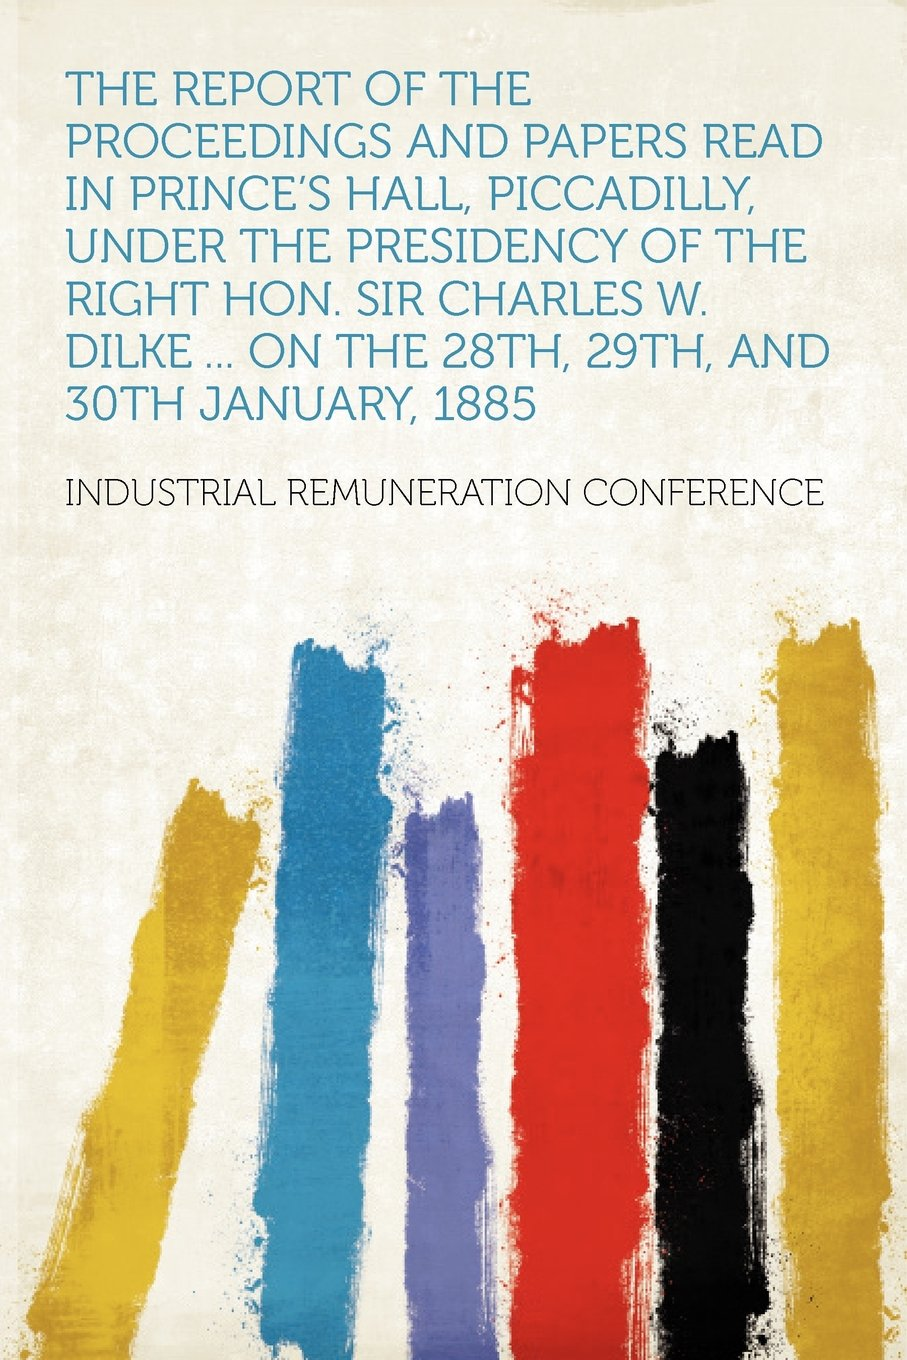 Download The Report of the Proceedings and Papers Read in Prince's Hall, Piccadilly, Under the Presidency of the Right Hon. Sir Charles W. Dilke ... on the 28th, 29th, and 30th January, 1885 pdf